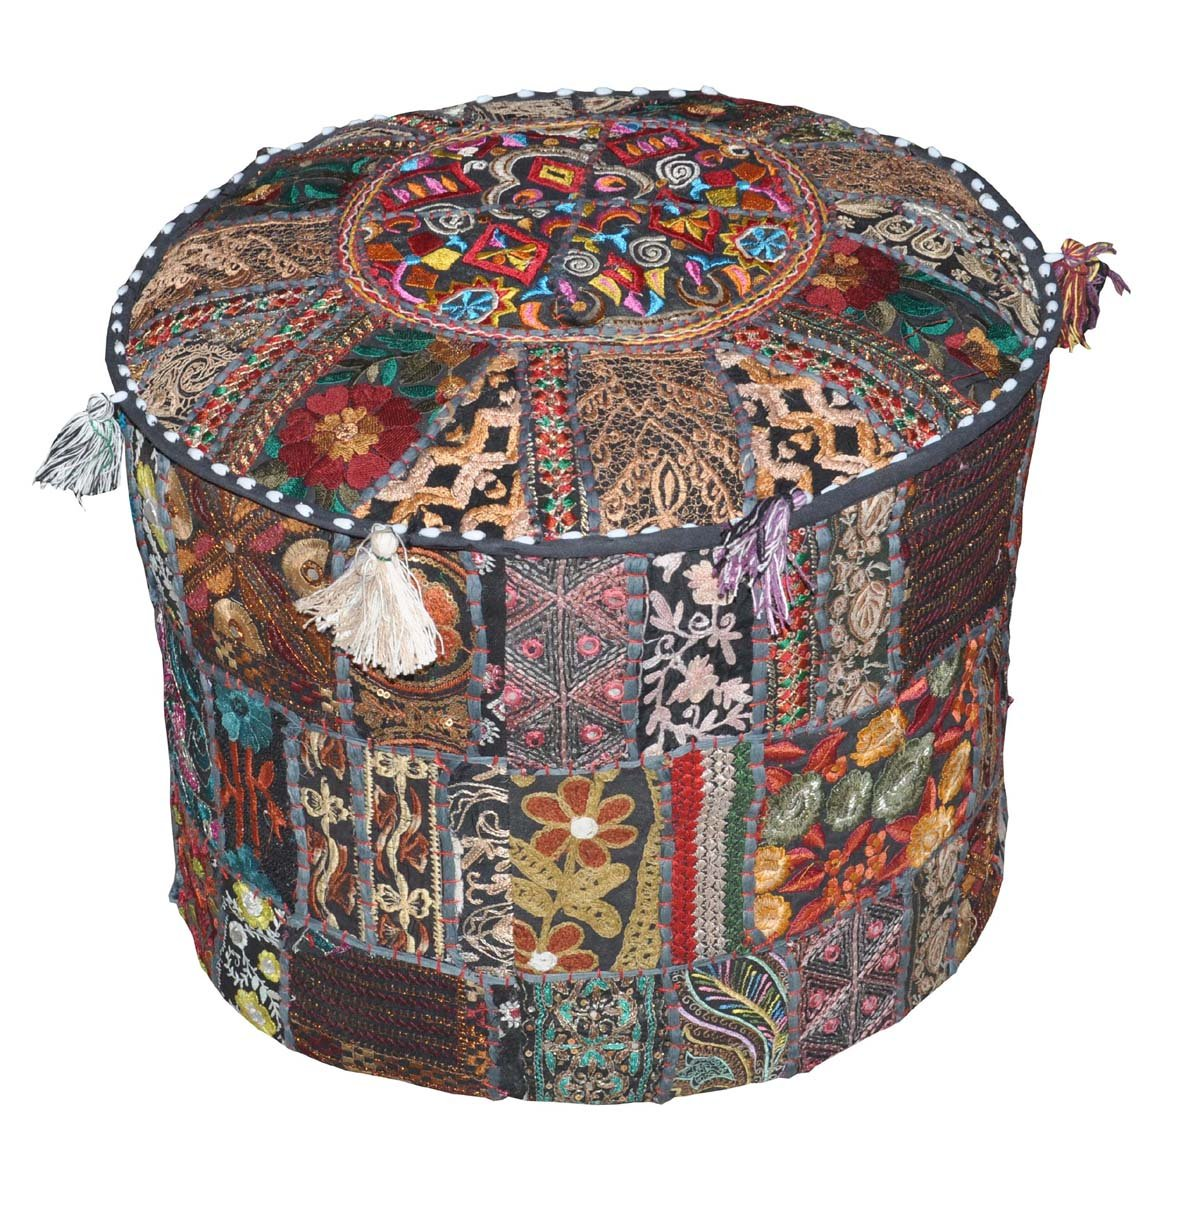 Indian Pouf Stool Vintage Patchwork Embellished With Patchwork Living Room Ottoman Cover, 18 X 13 Inches Rajasthali